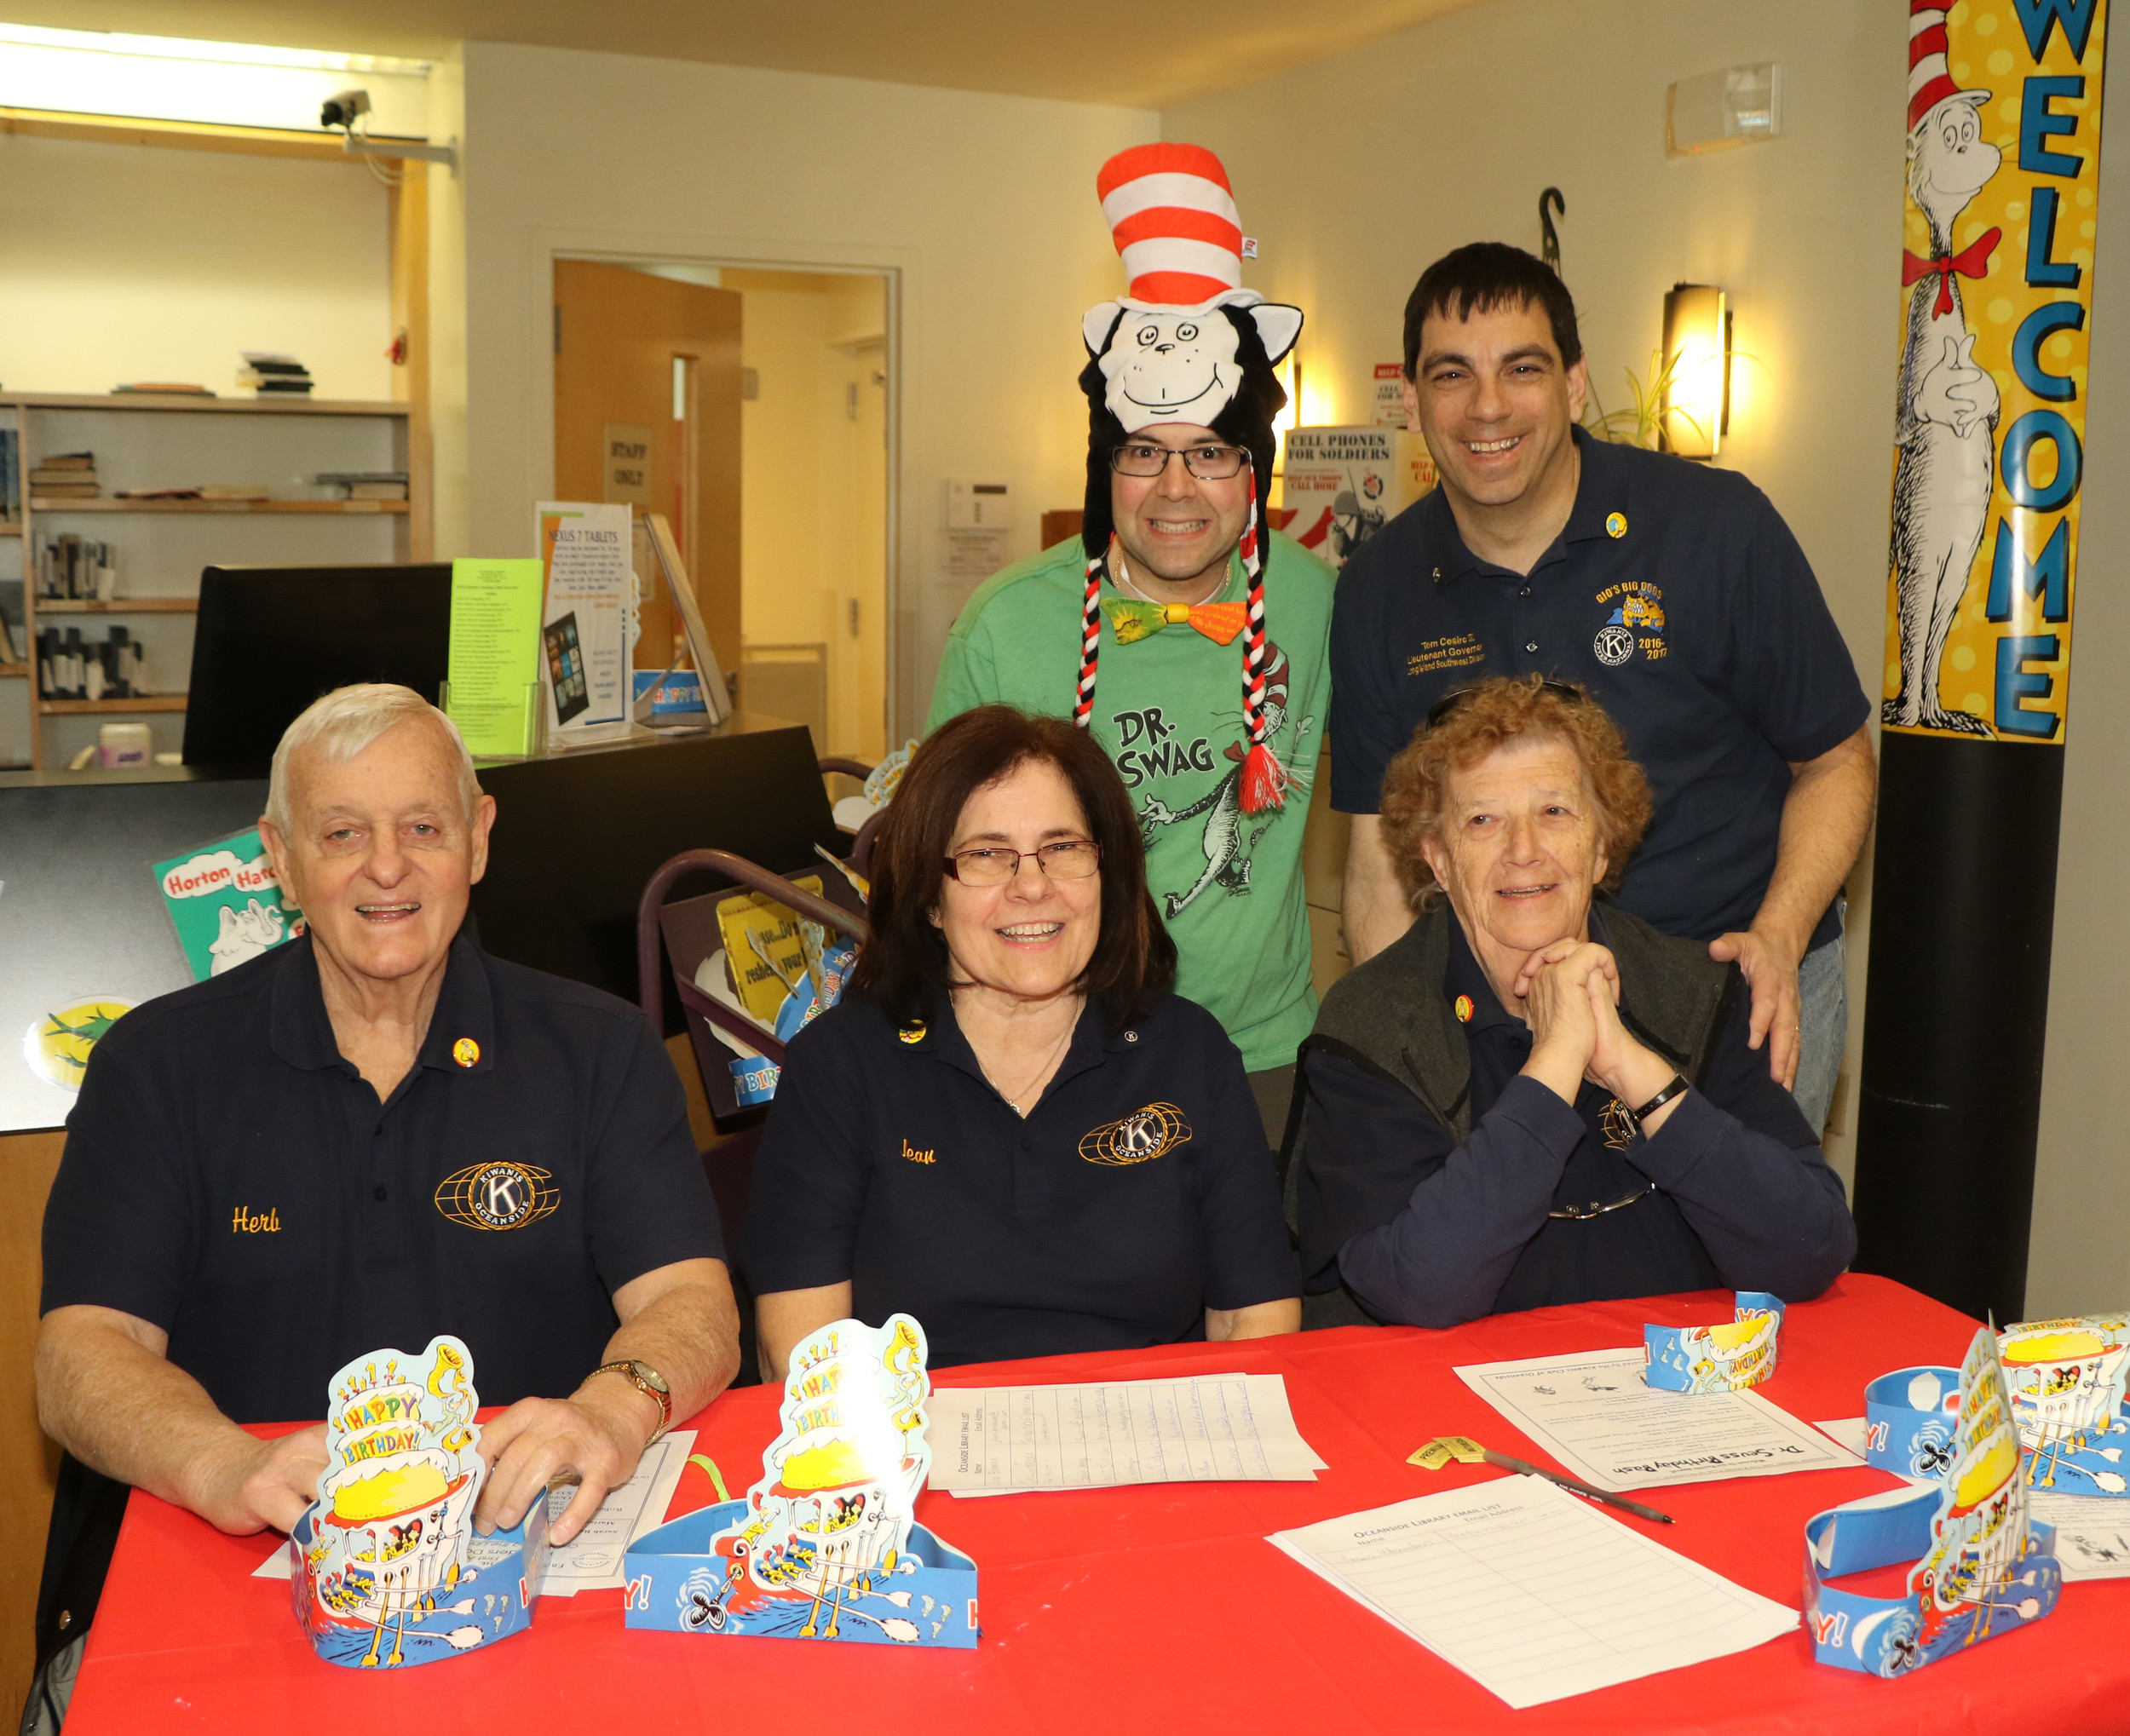 Michael Ambrosio, wearing green, along with Oceanside Kiwanis Lt. Gov. Thomas Cesiro, Herb Faust, Jean Kramer and Joan Ivarson welcomed visitors at Oceanside Library's Dr. Seuss Birthday Bash on March 5.